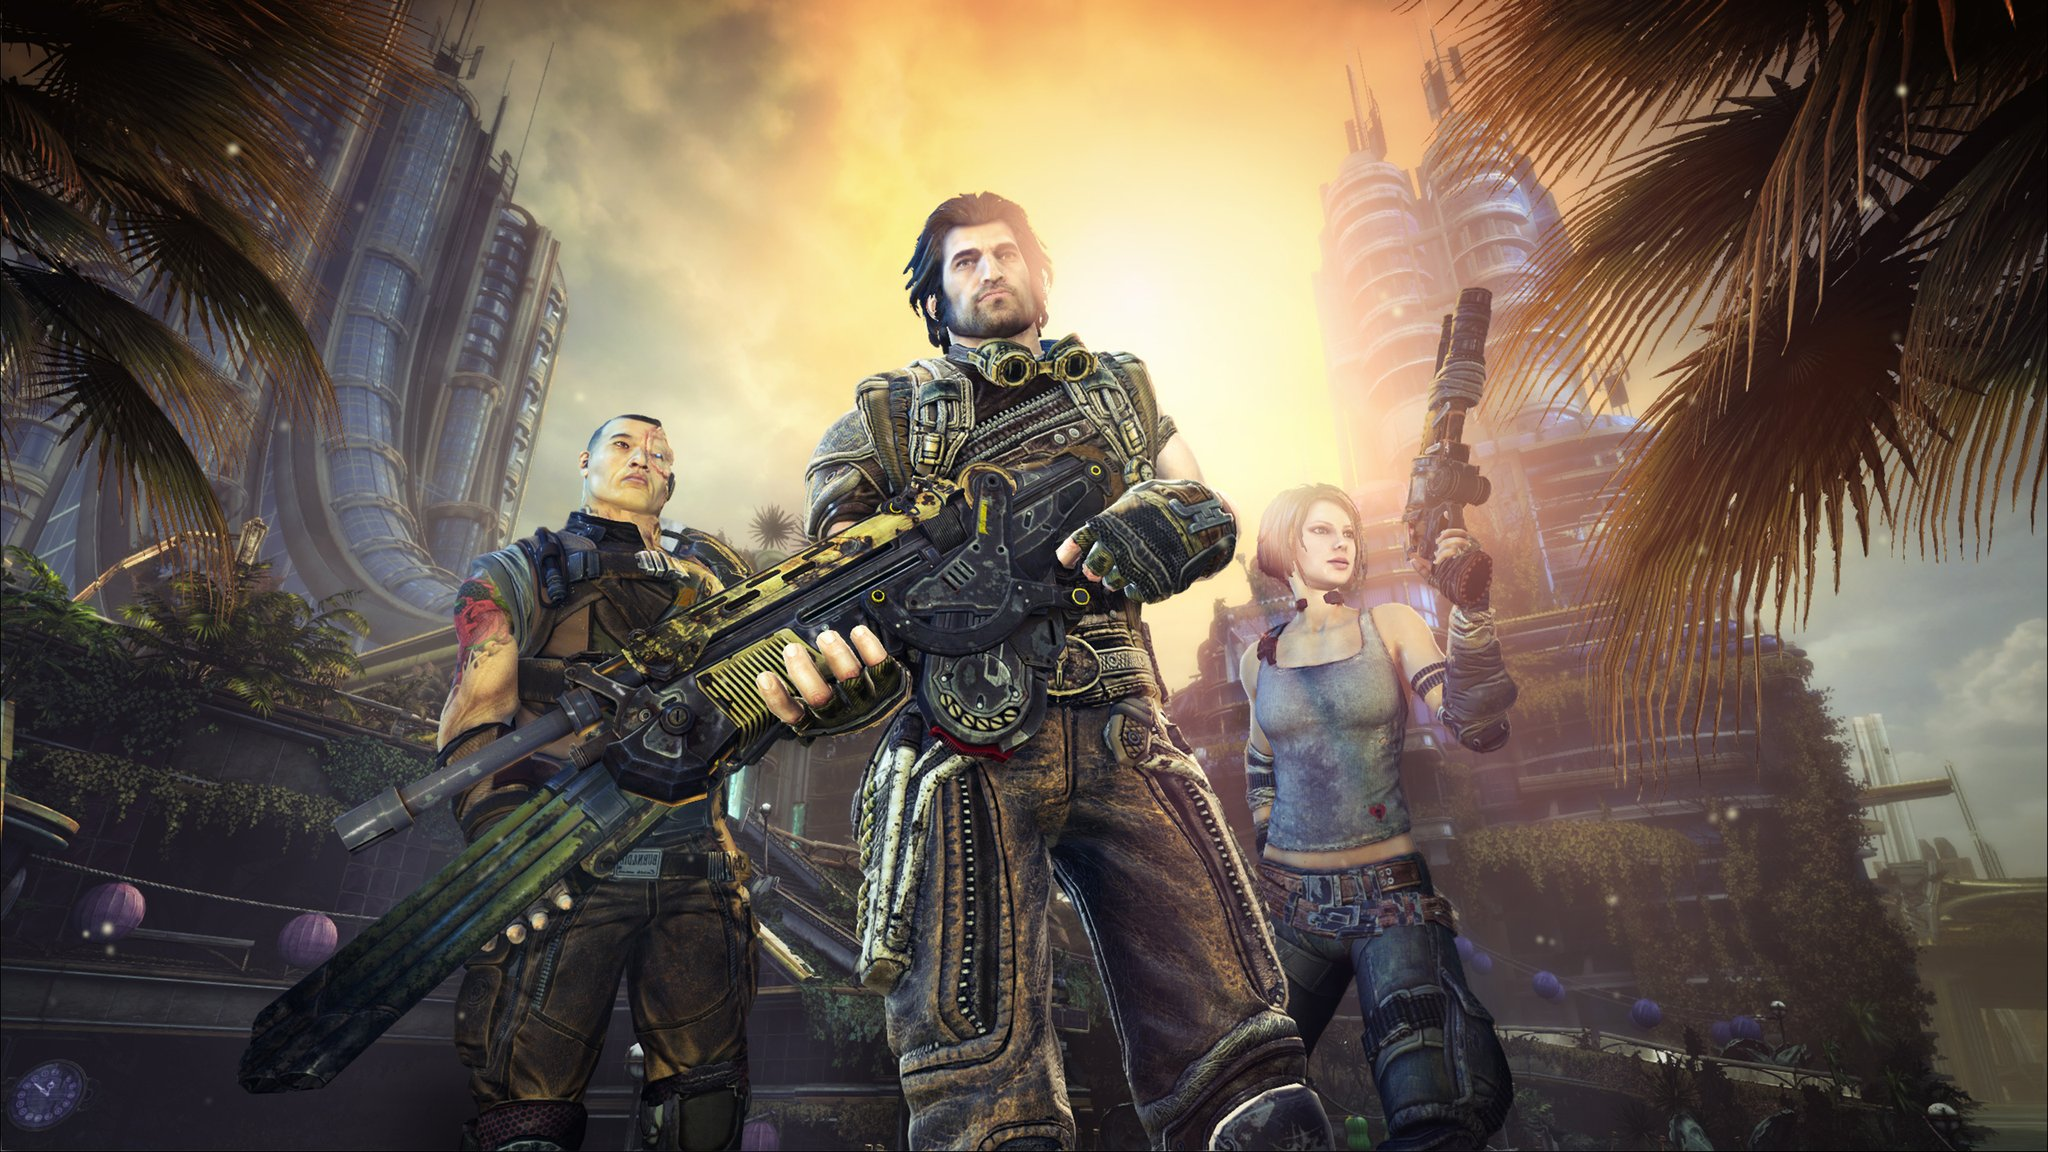 There may be a Bulletstorm remaster in the works